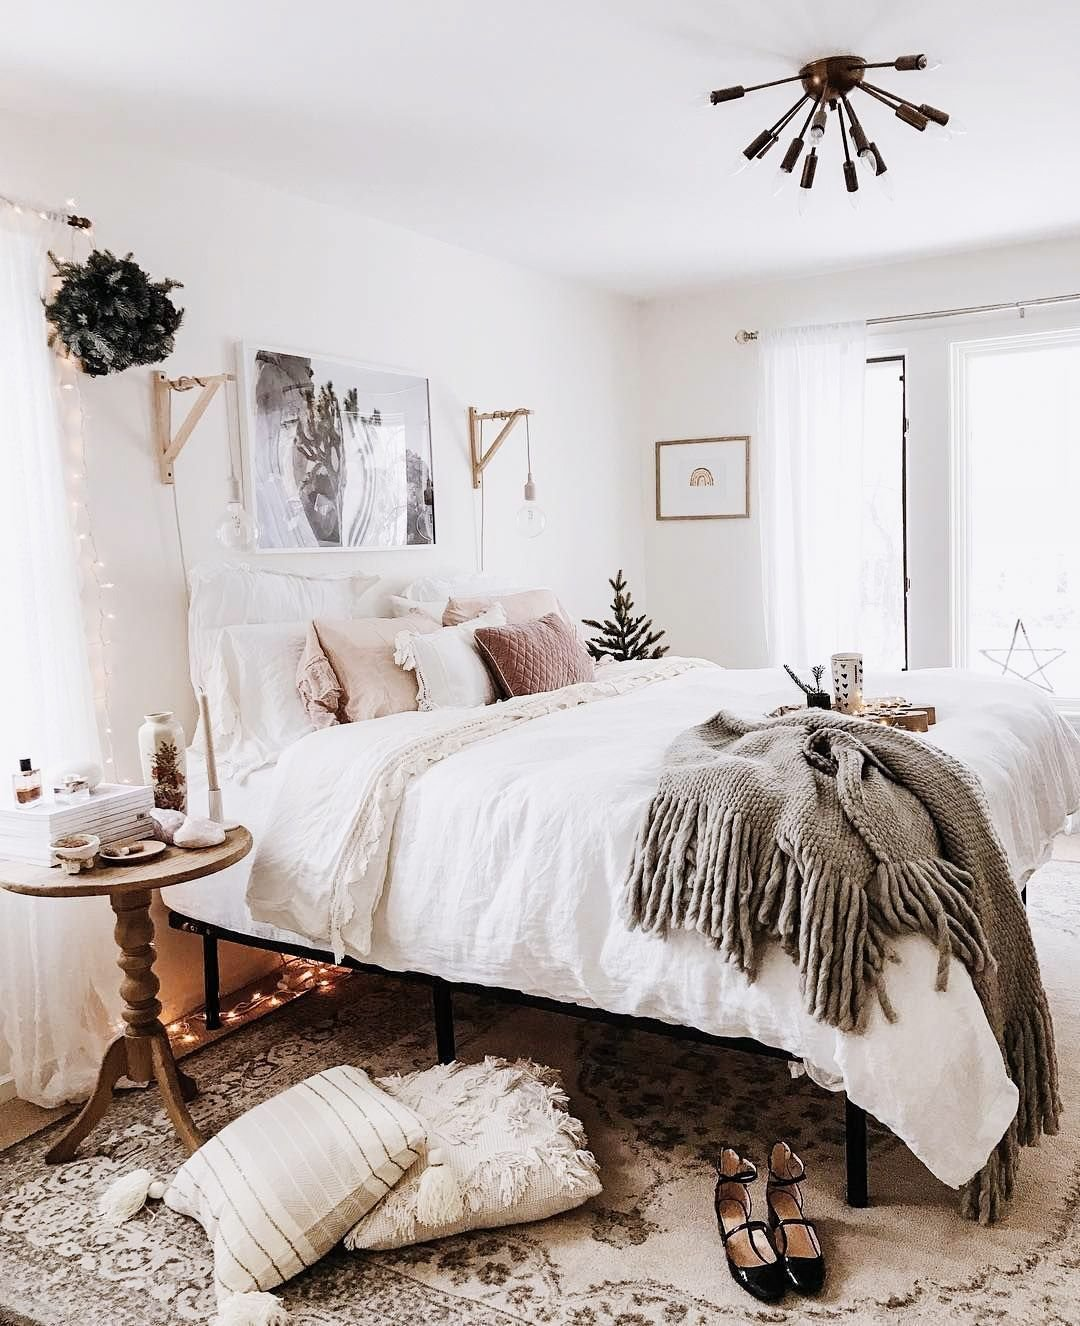 Best Bedroom Comfy Boho Apartmentliving Home Sweet Home With Pictures